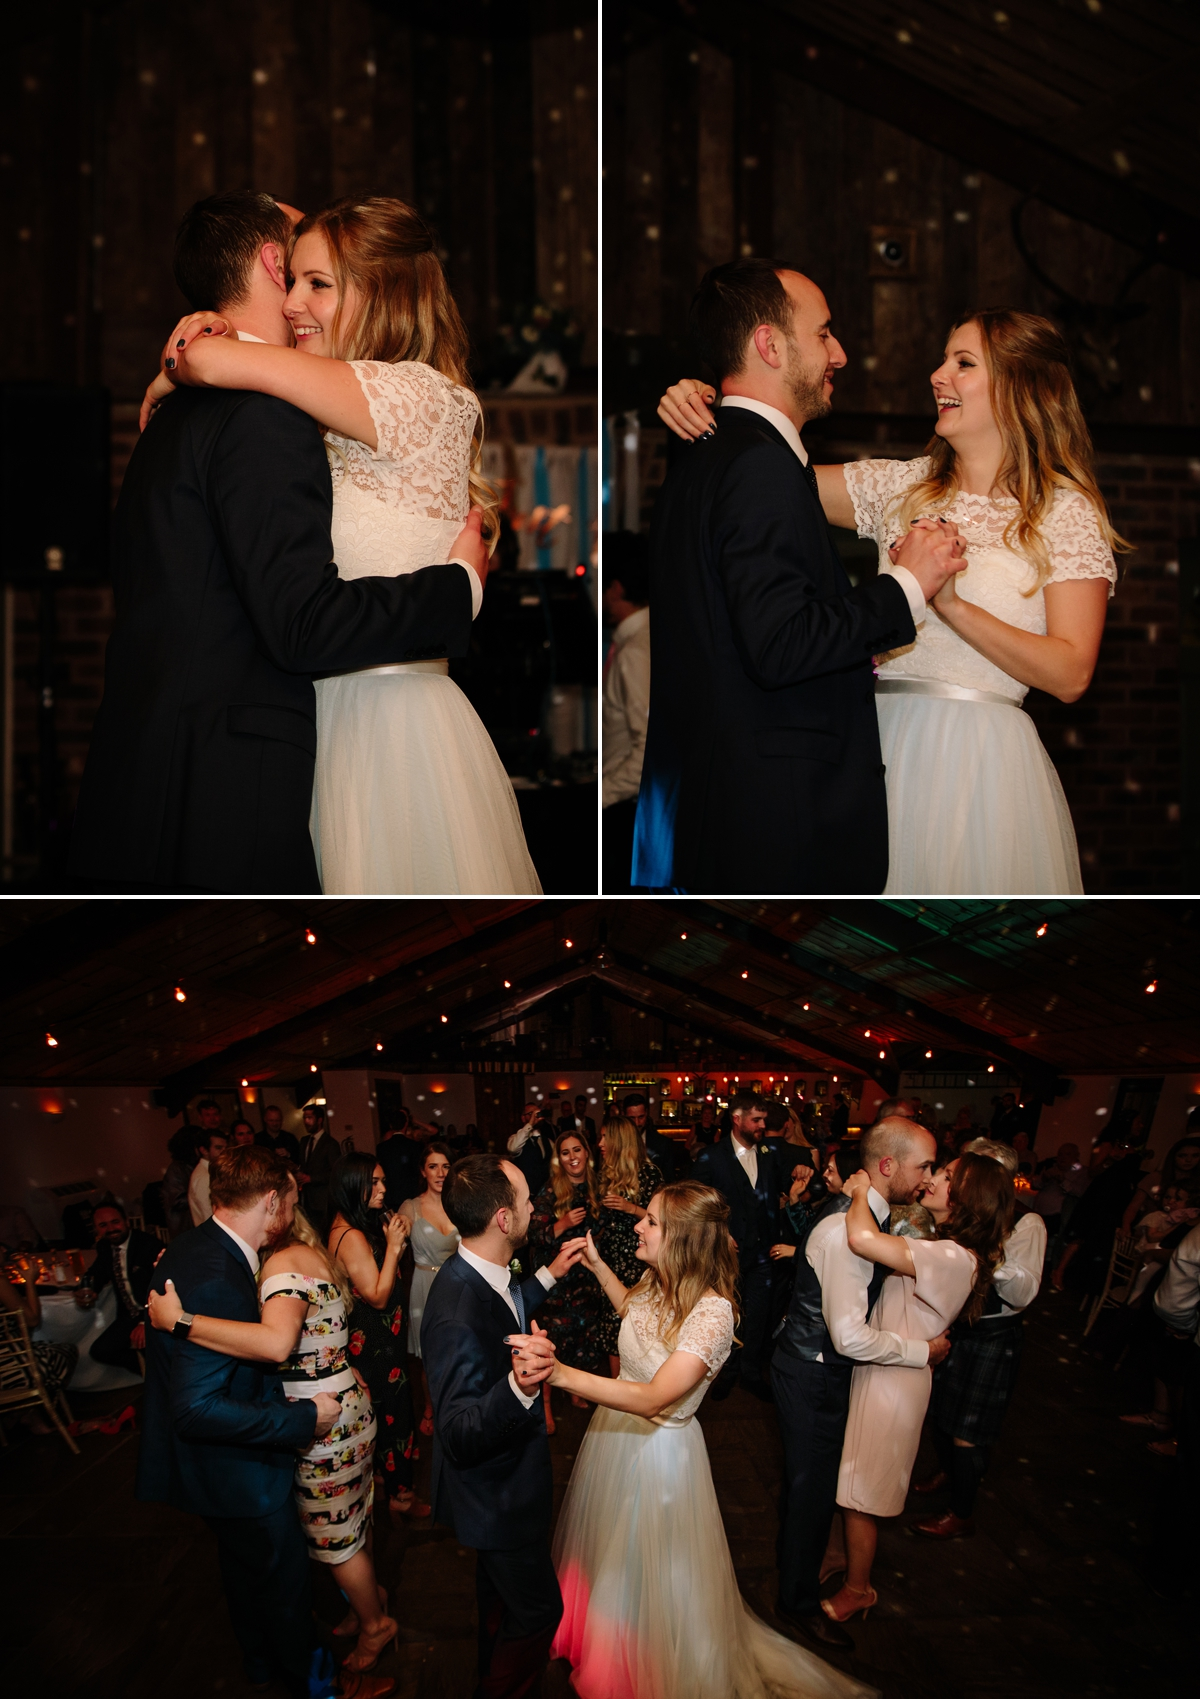 Bride and Groom and wedding guests dancing